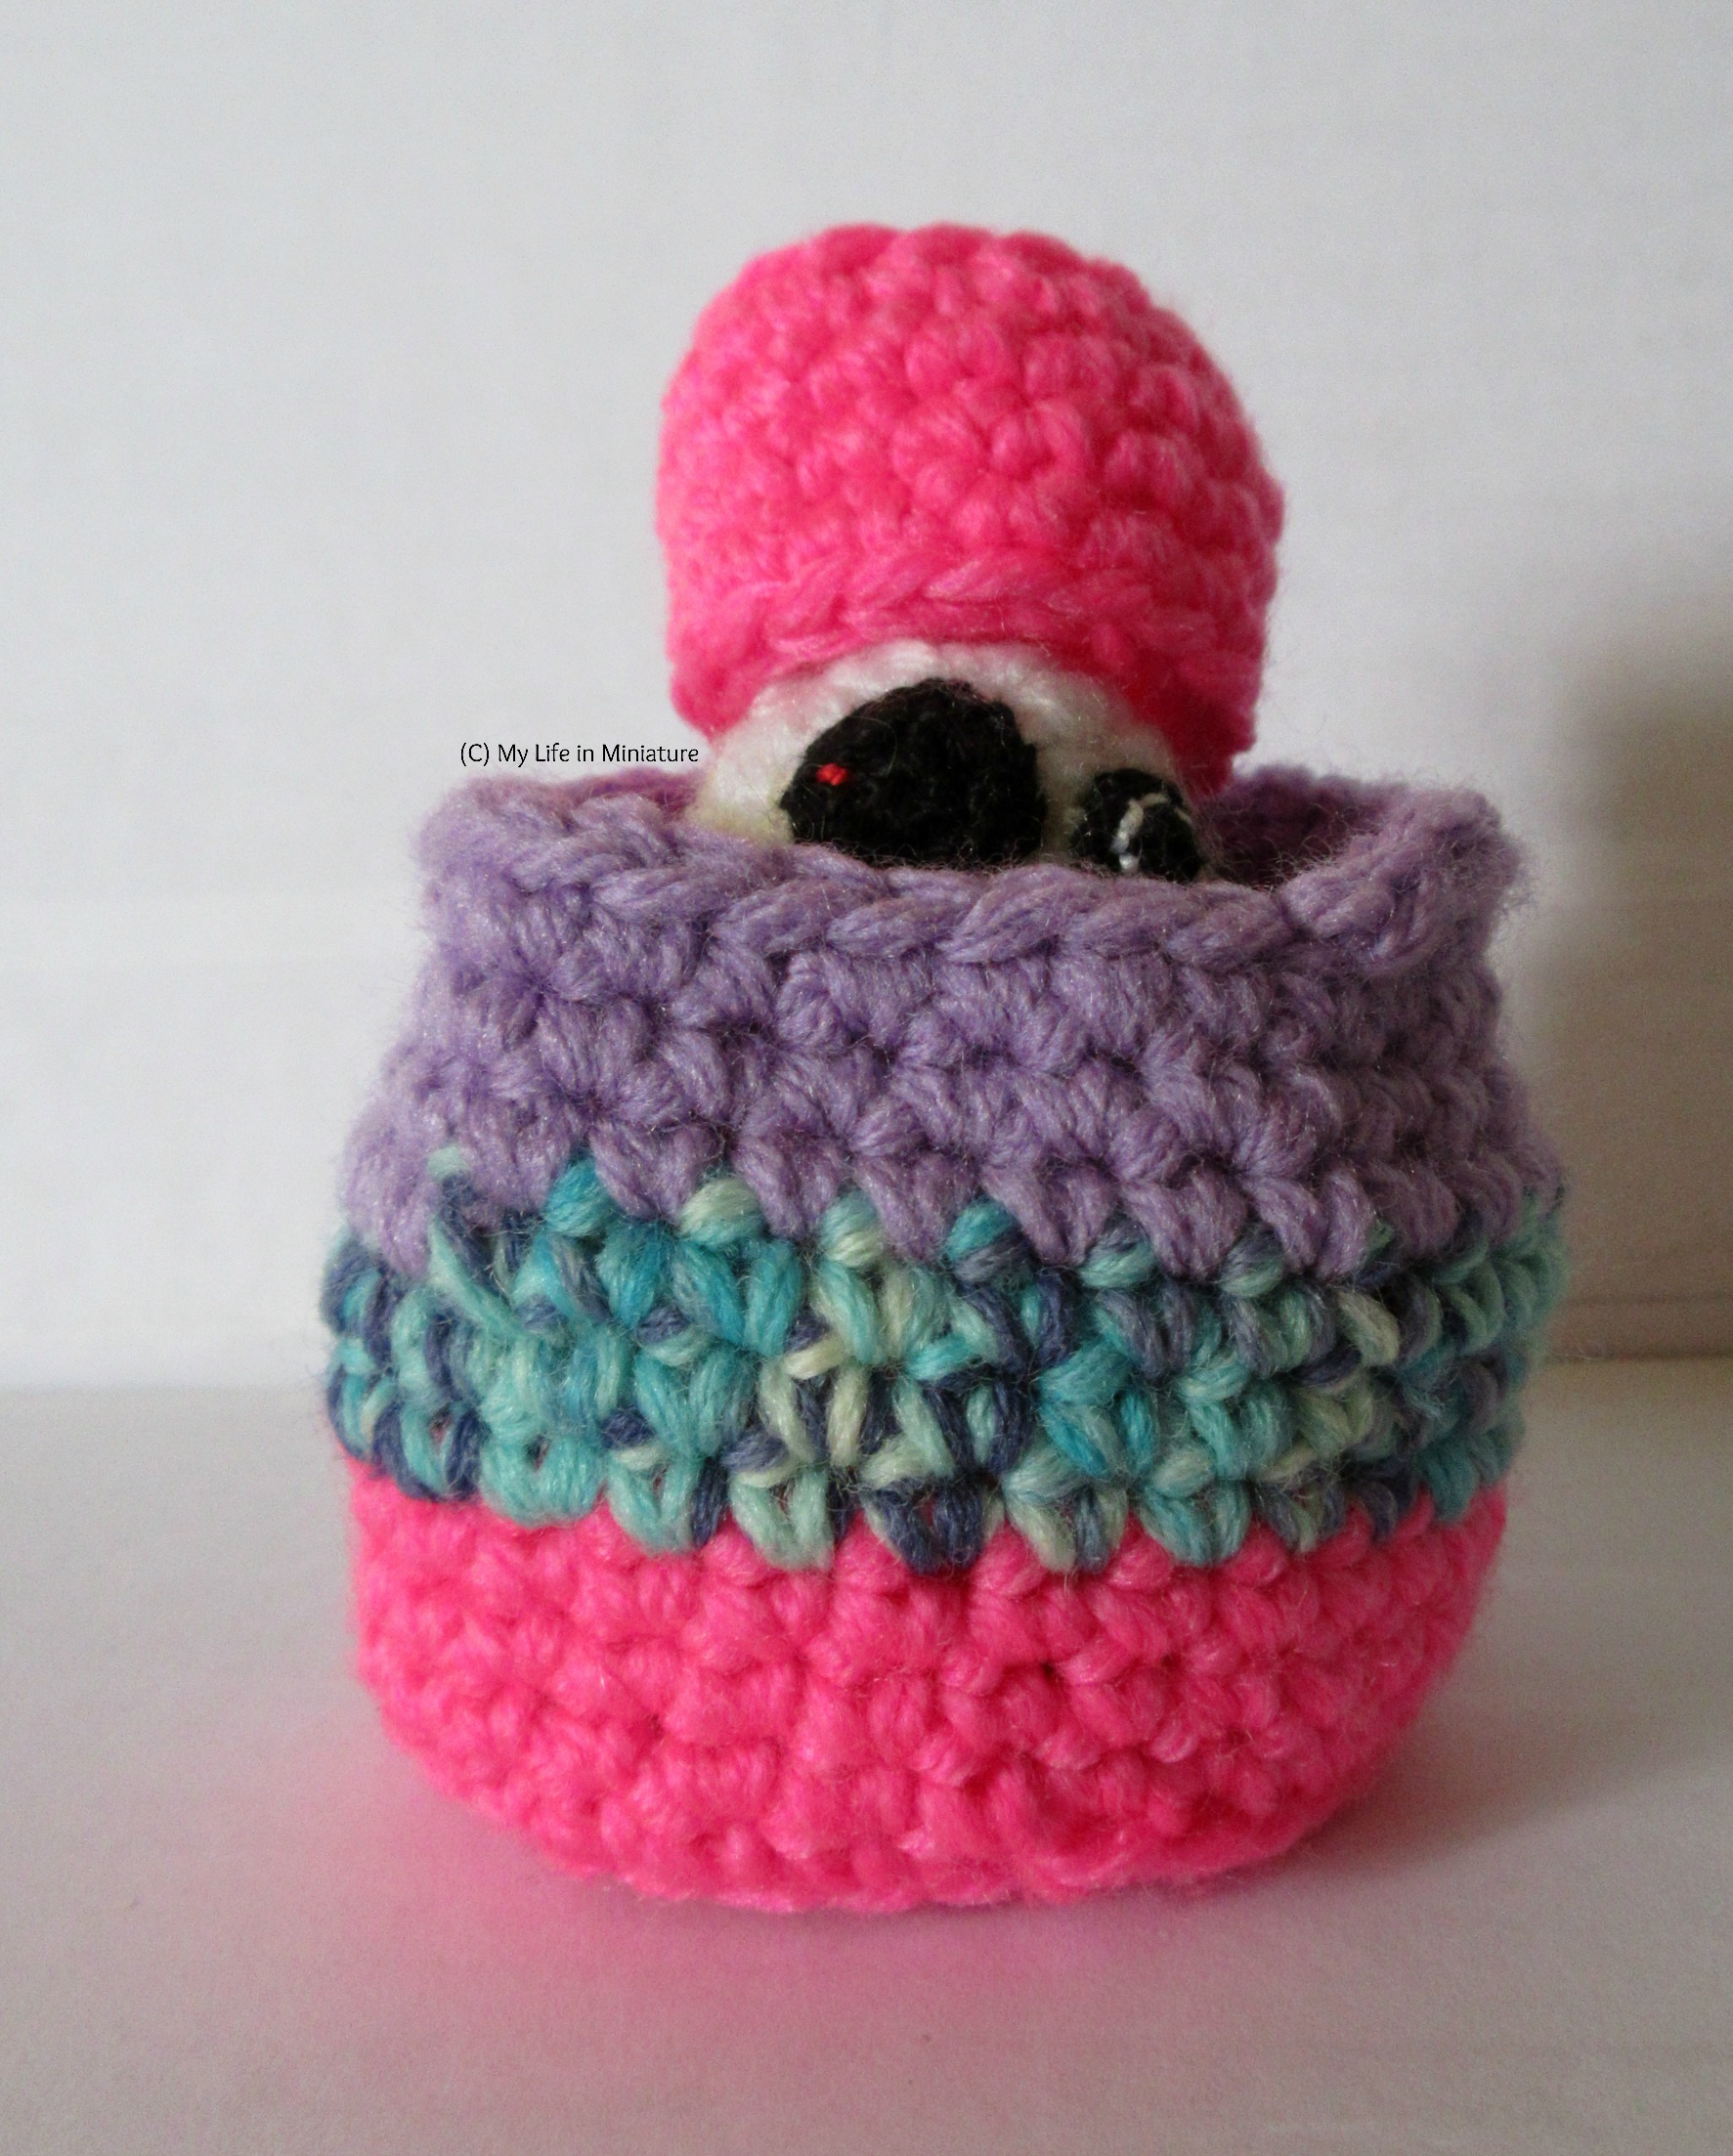 The crocheted BB-8 sits inside the larger nest, with the smaller nest perched on his head like a very large hot pink hat.